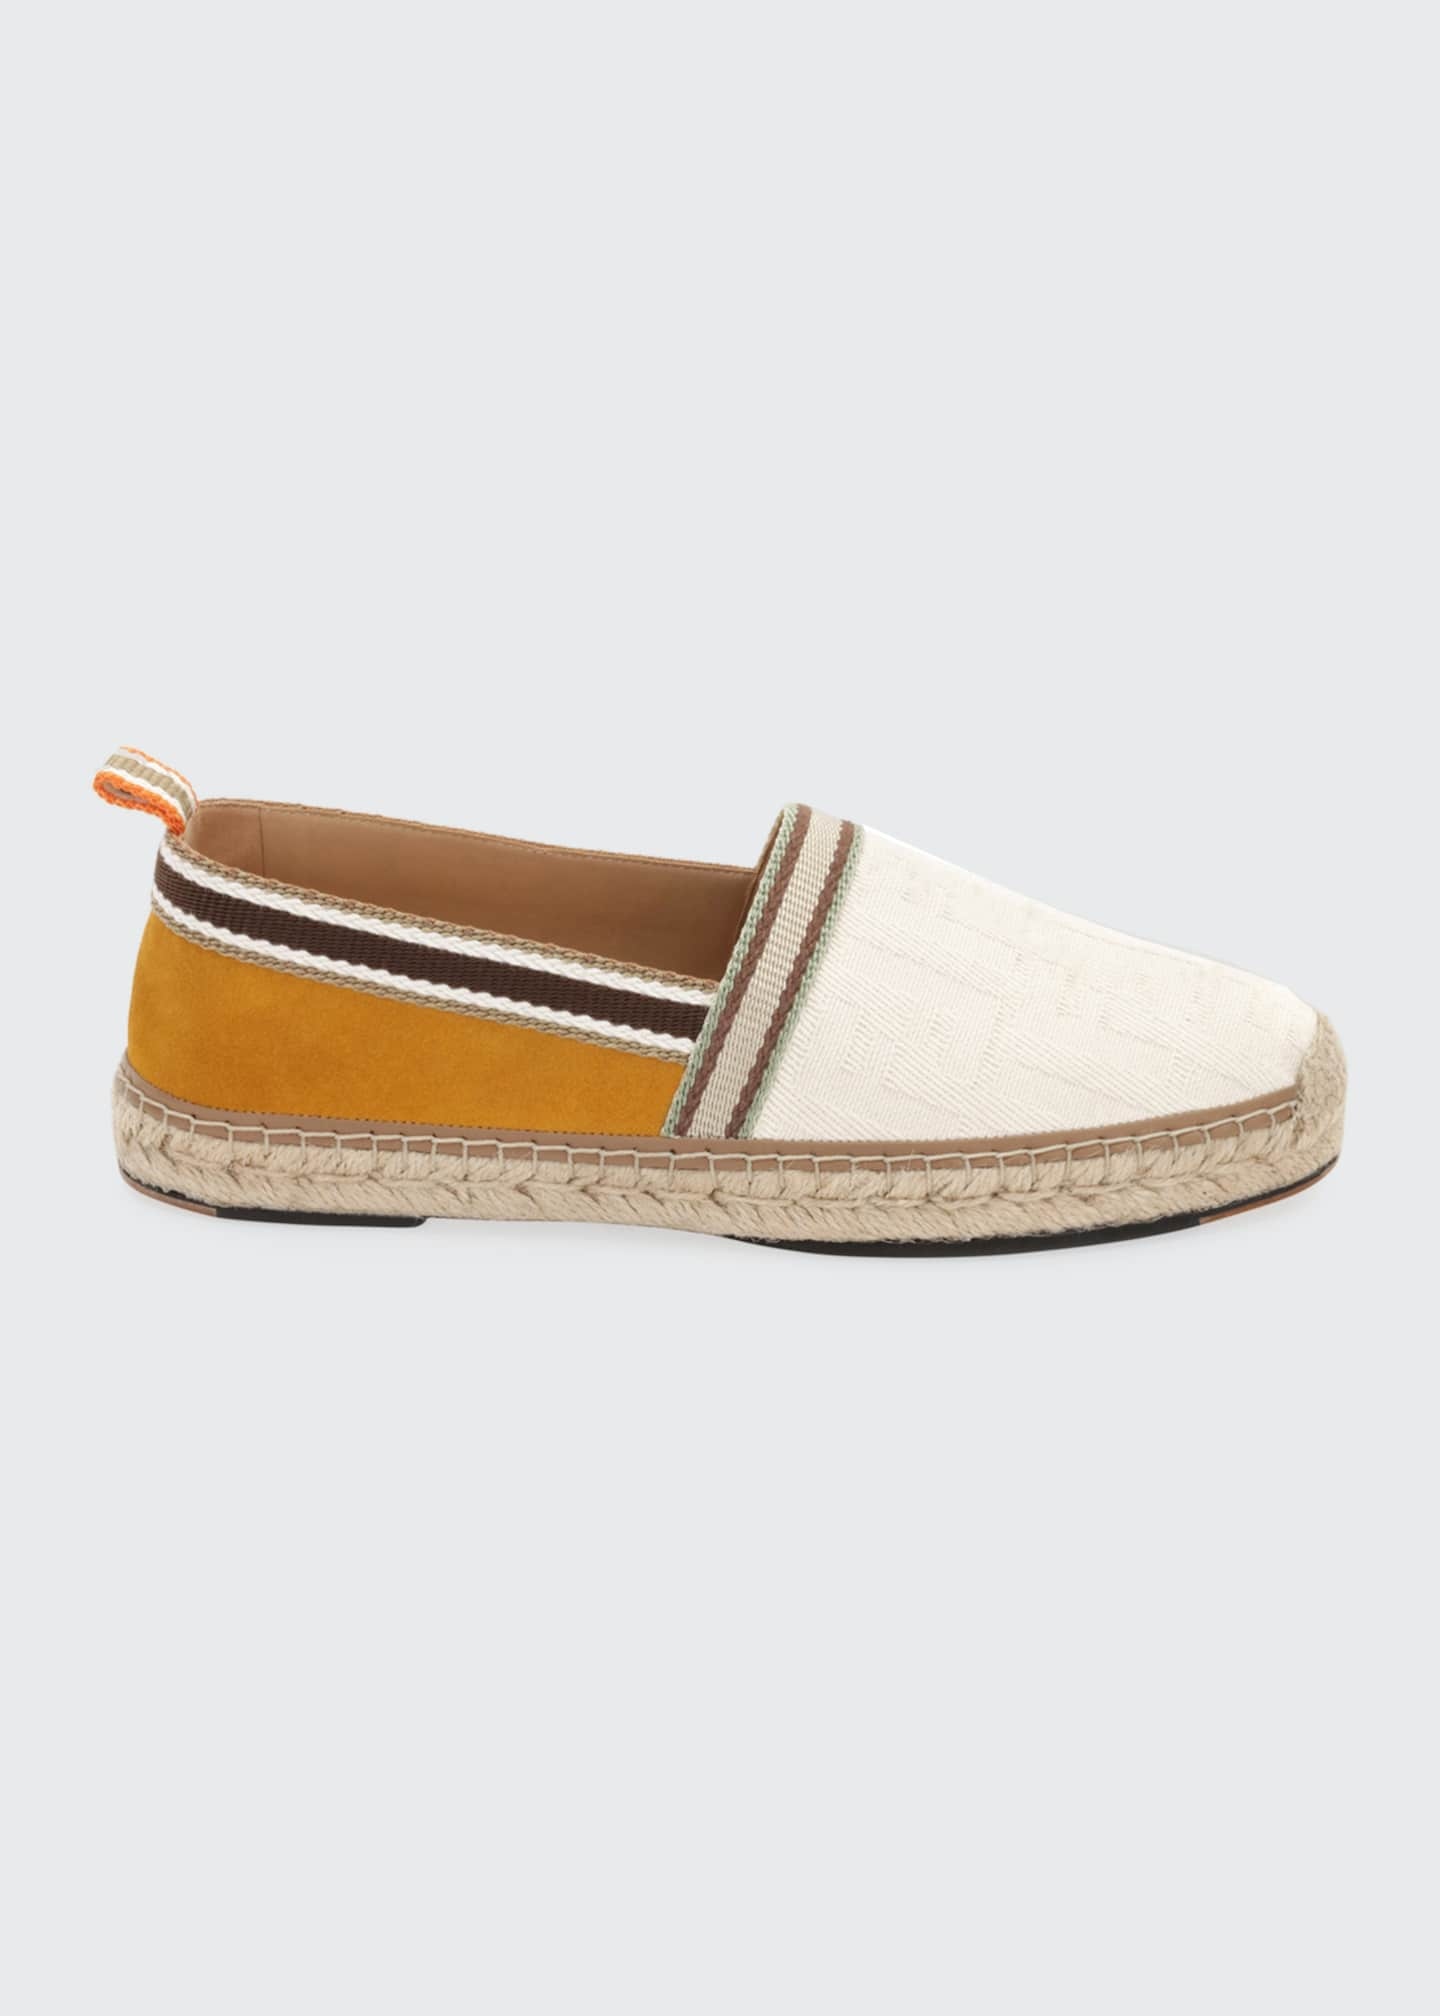 Men's Colorblock FF Espadrilles